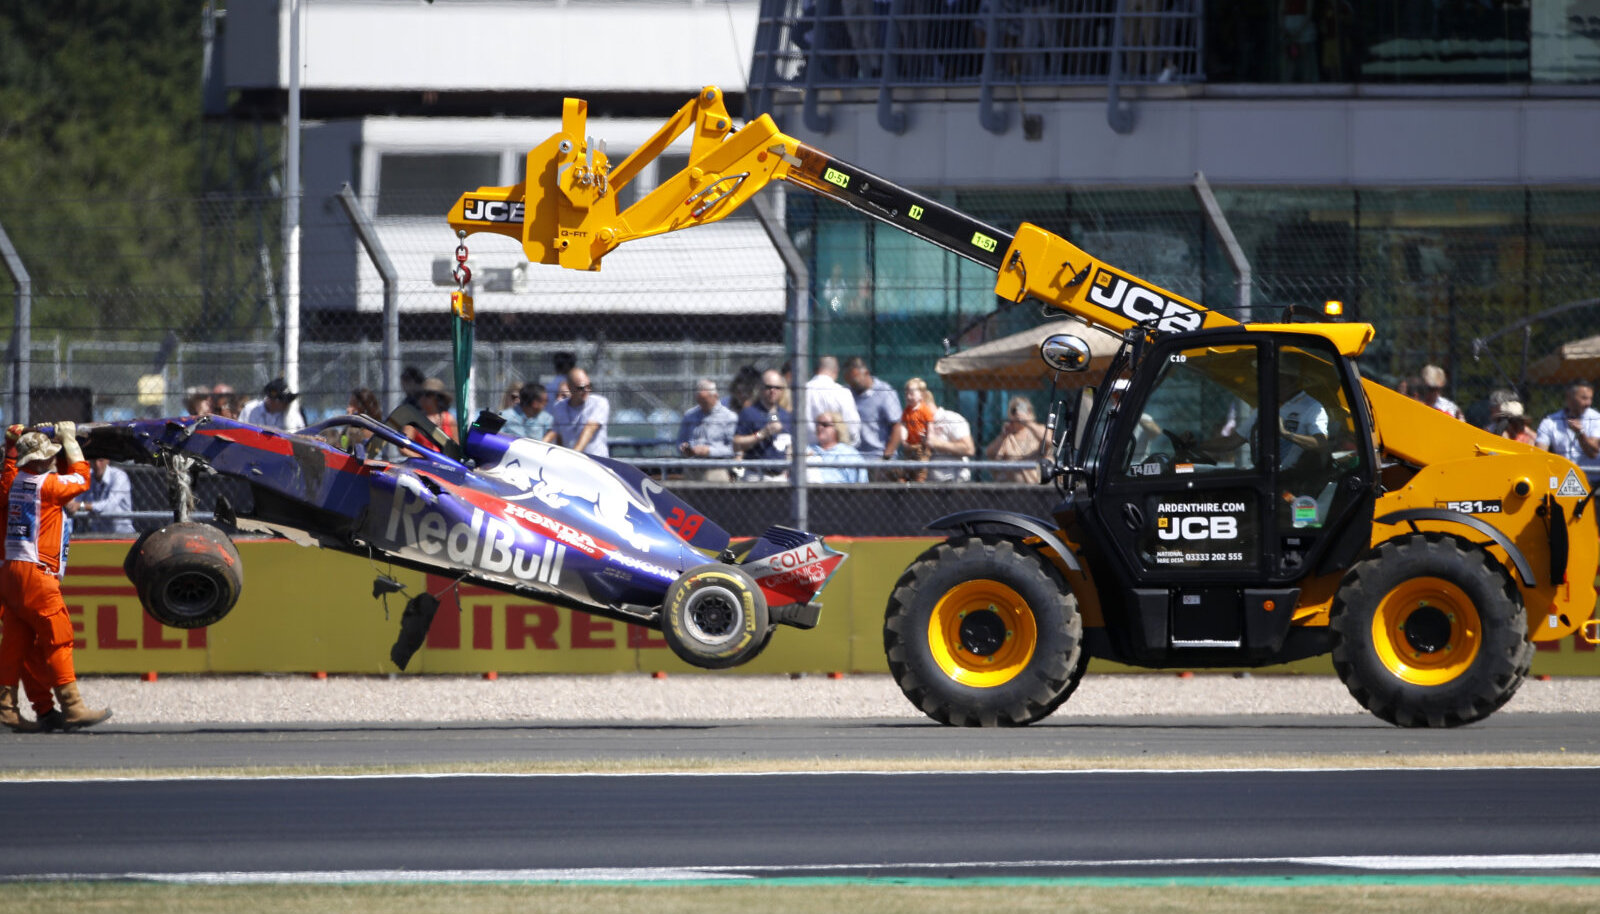 Brendon Hartley vormel pärast avariid Silverstone`is